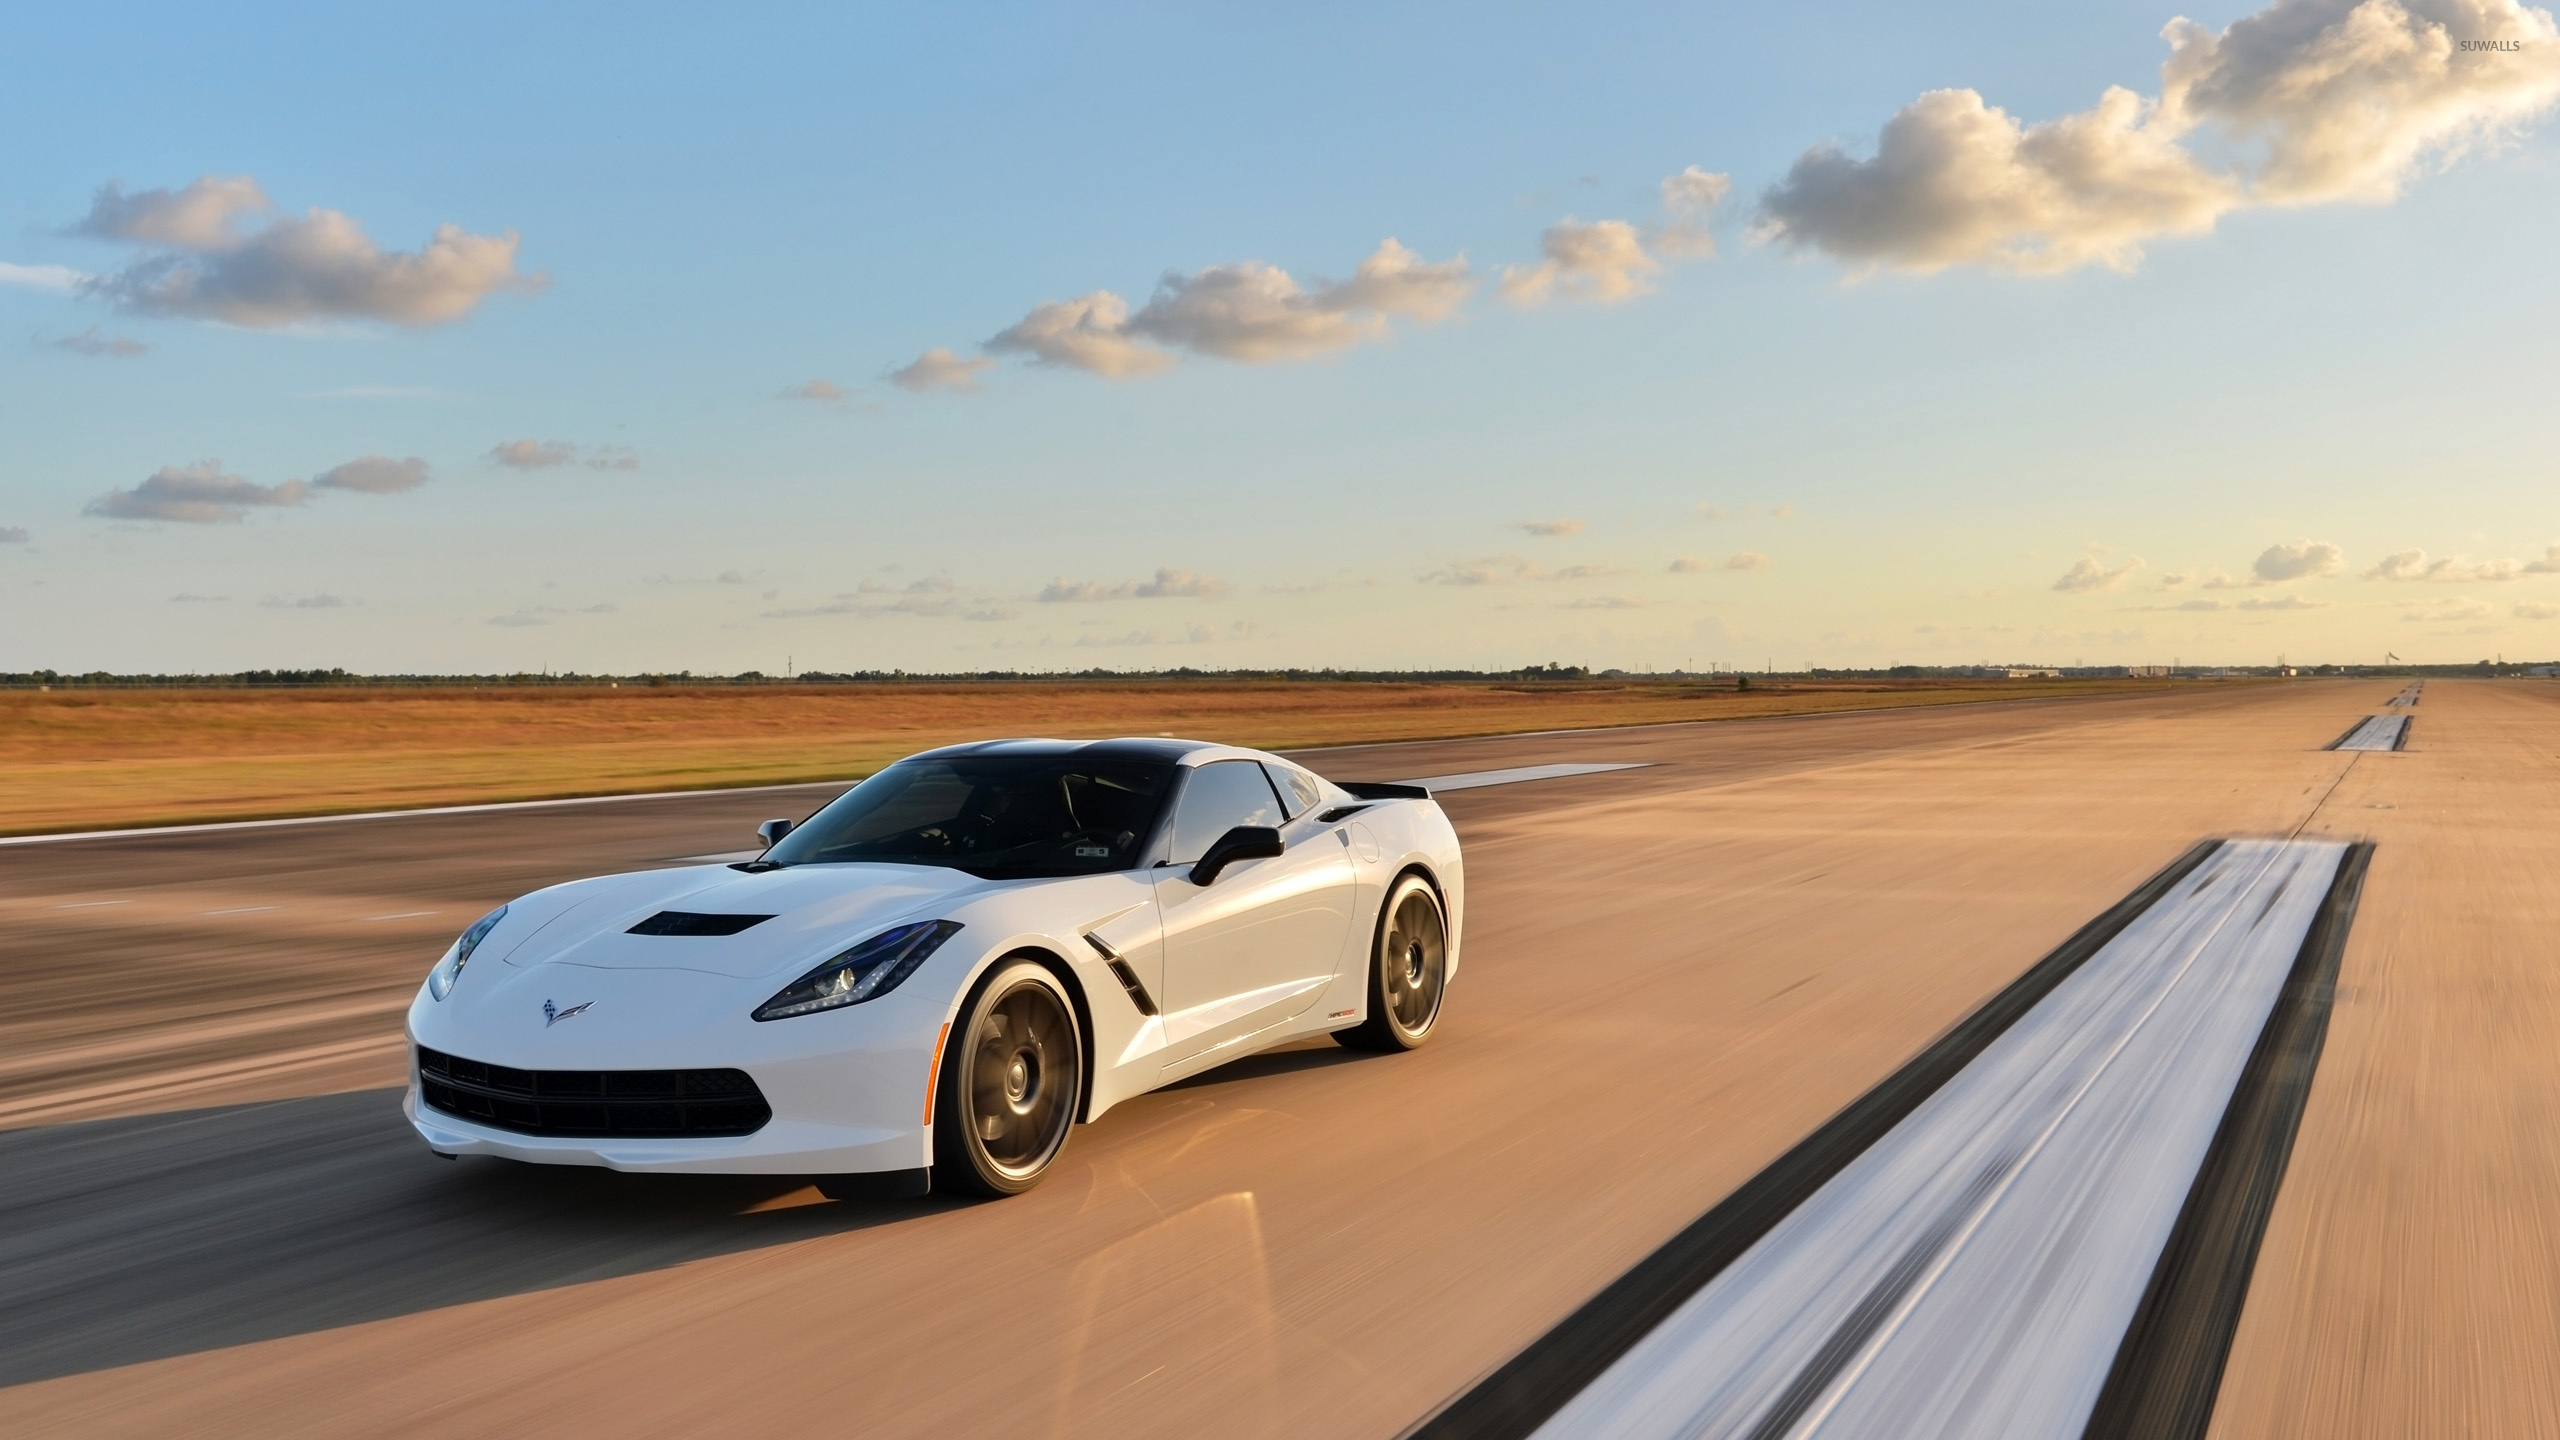 White Chevrolet Corvette C7 Stingray Wallpaper